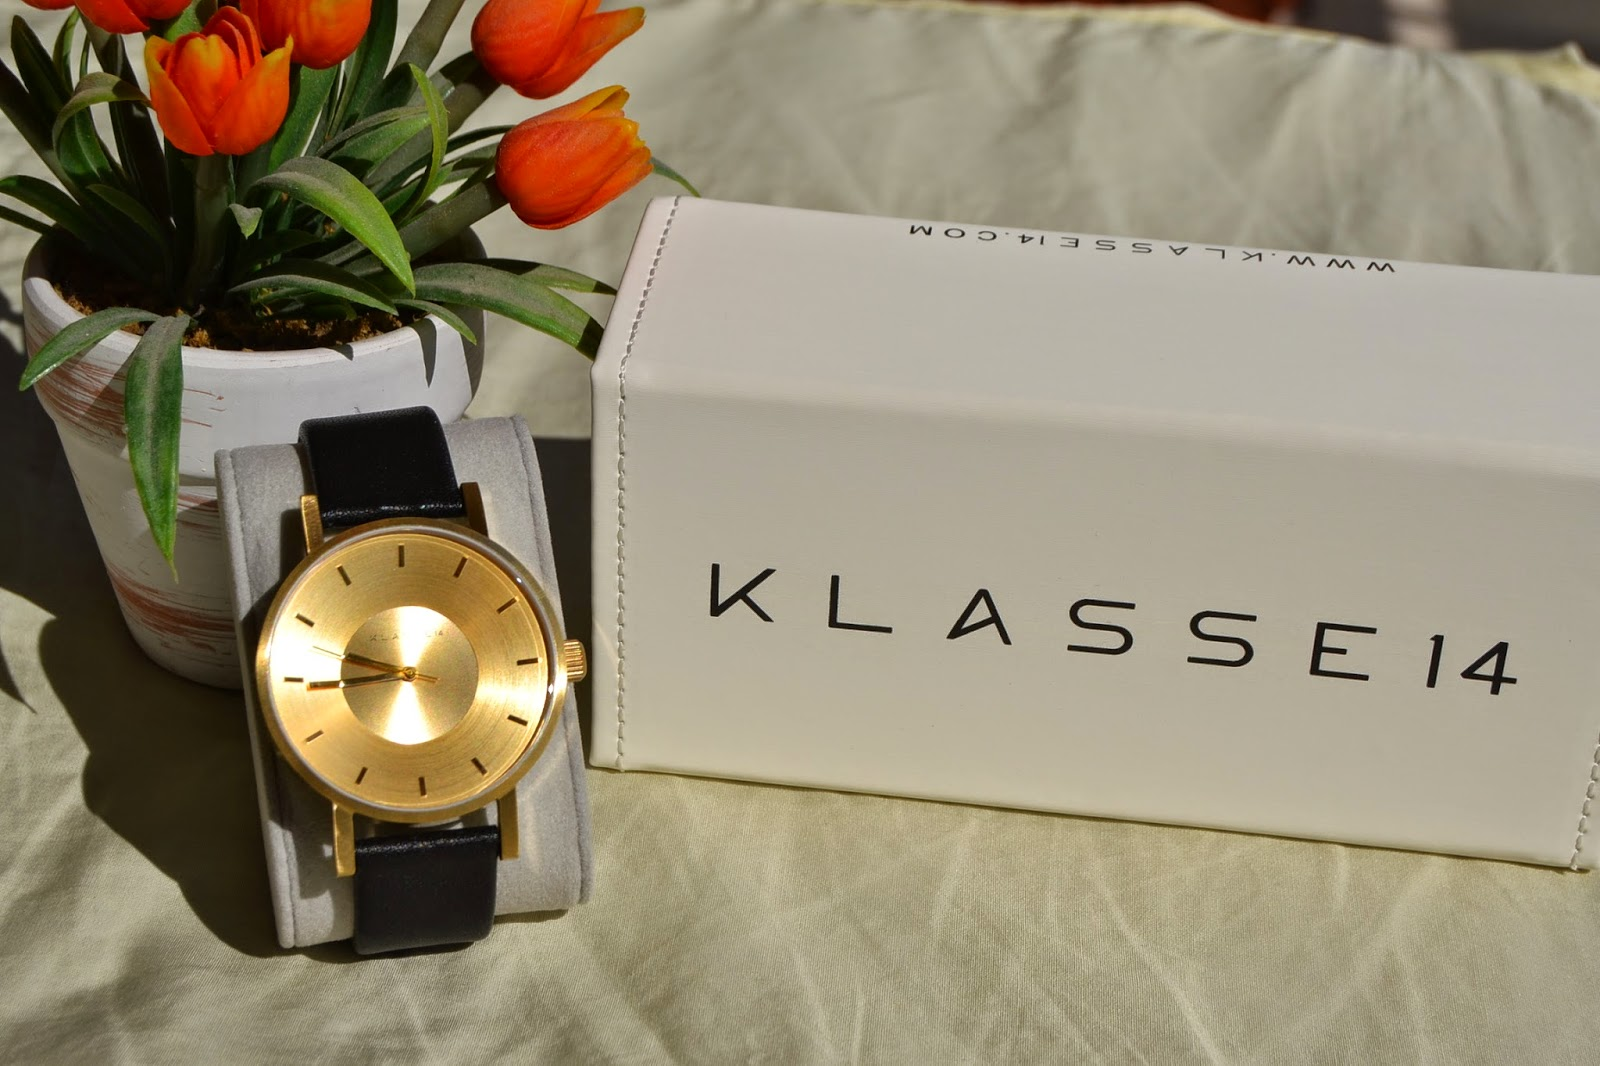 http://www.syriouslyinfashion.com/2014/10/klasse-14-volare-gold-watch-special.html